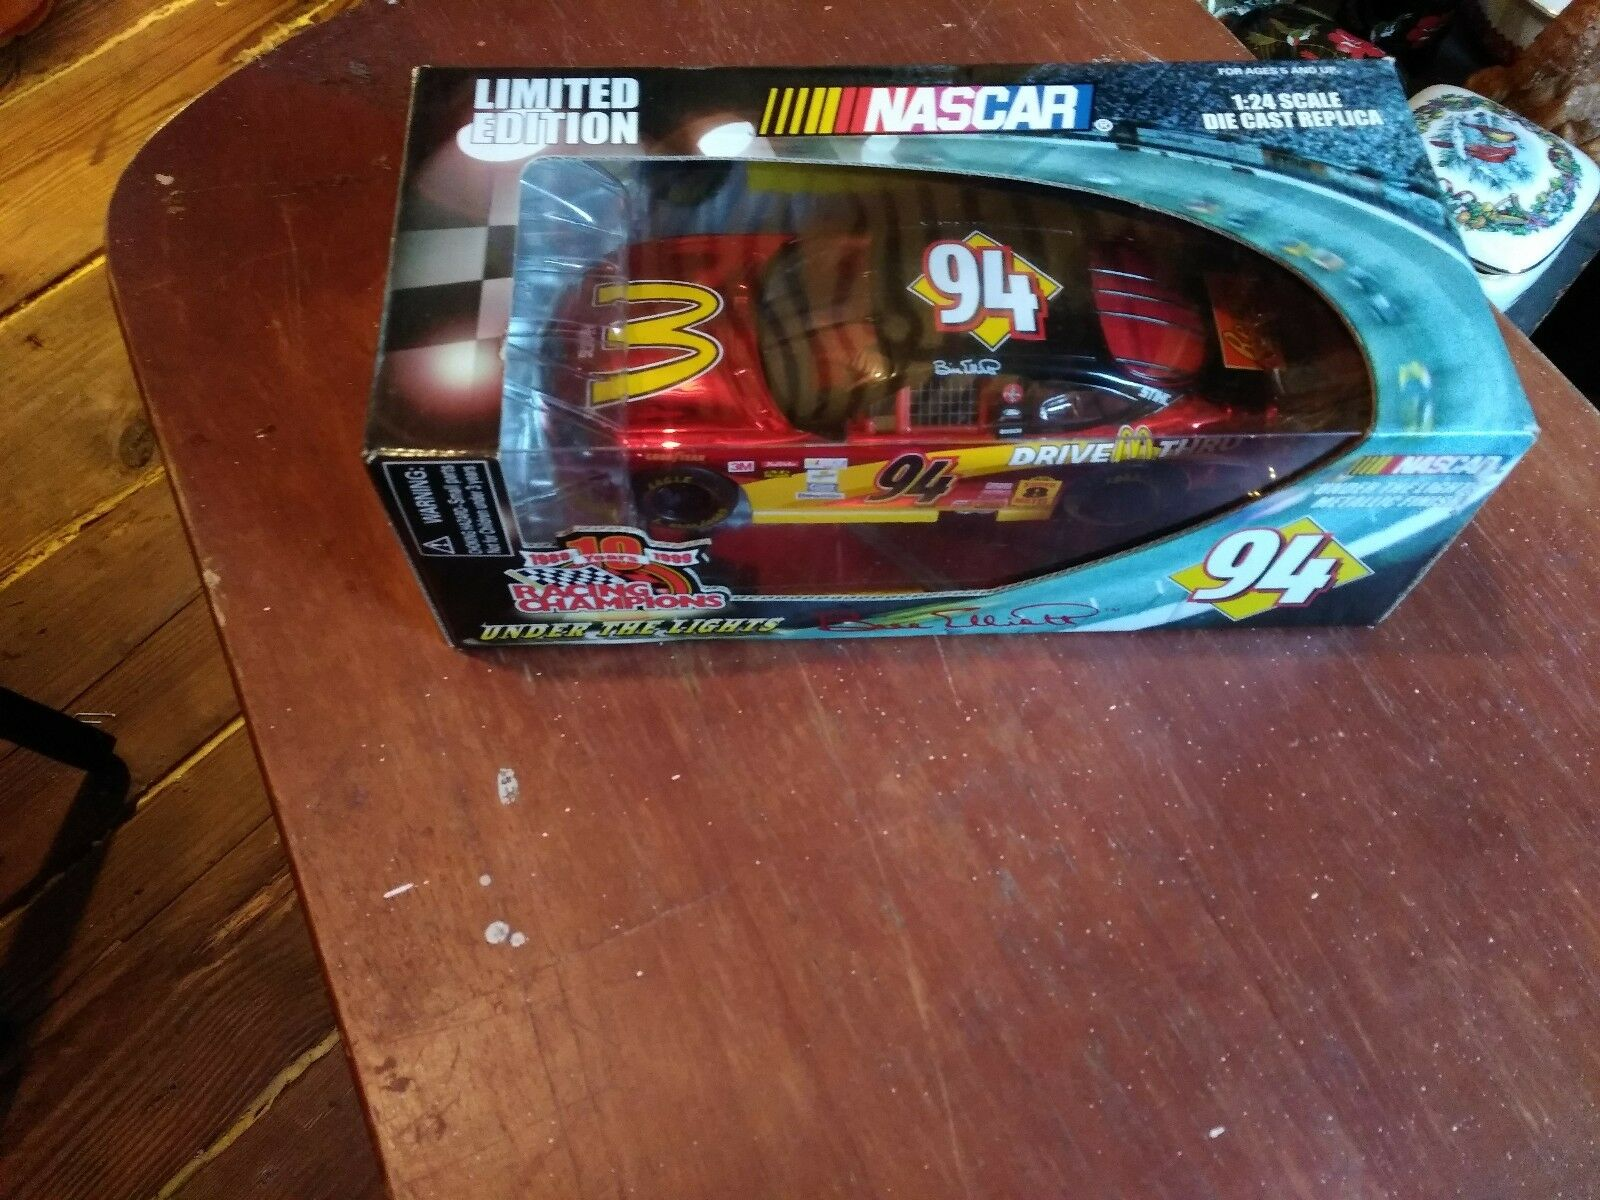 Vntg Vntg Vntg 1999 Nascar Bill Elliot Limited Edition Metallic Finish Racing Champion 388518